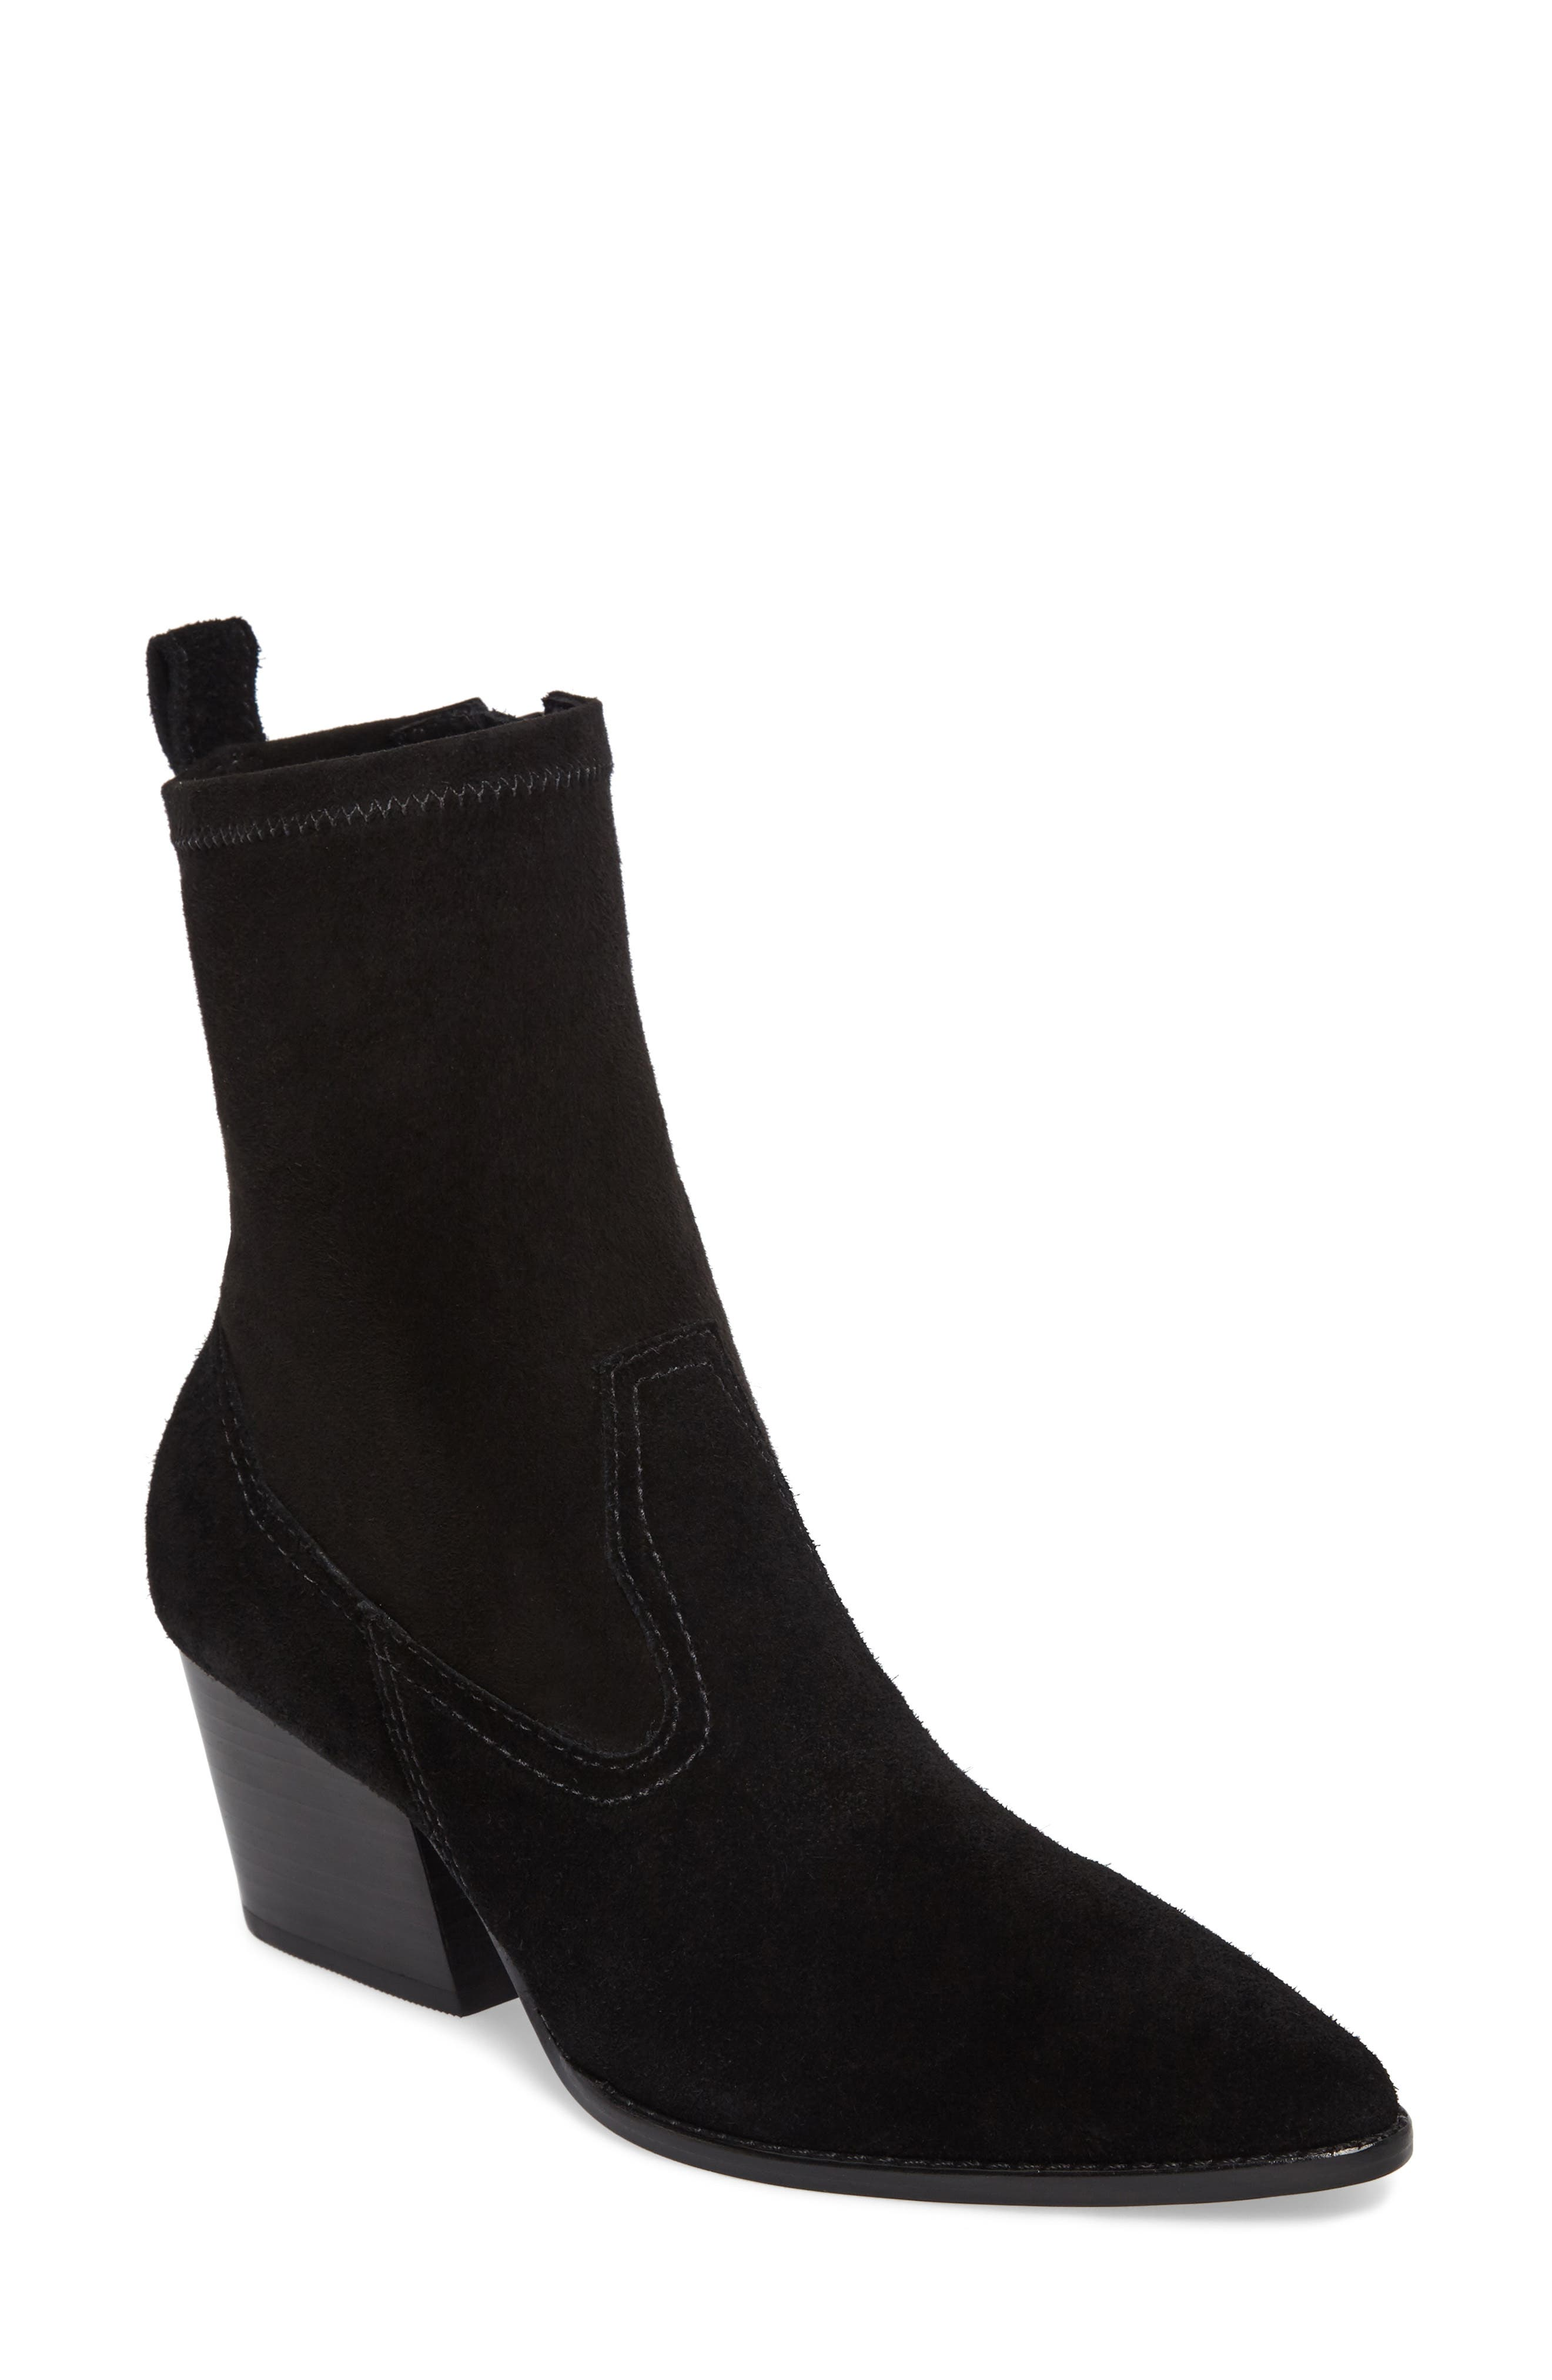 Alternate Image 1 Selected - Matisse Flash Stretch Shaft Bootie (Women)